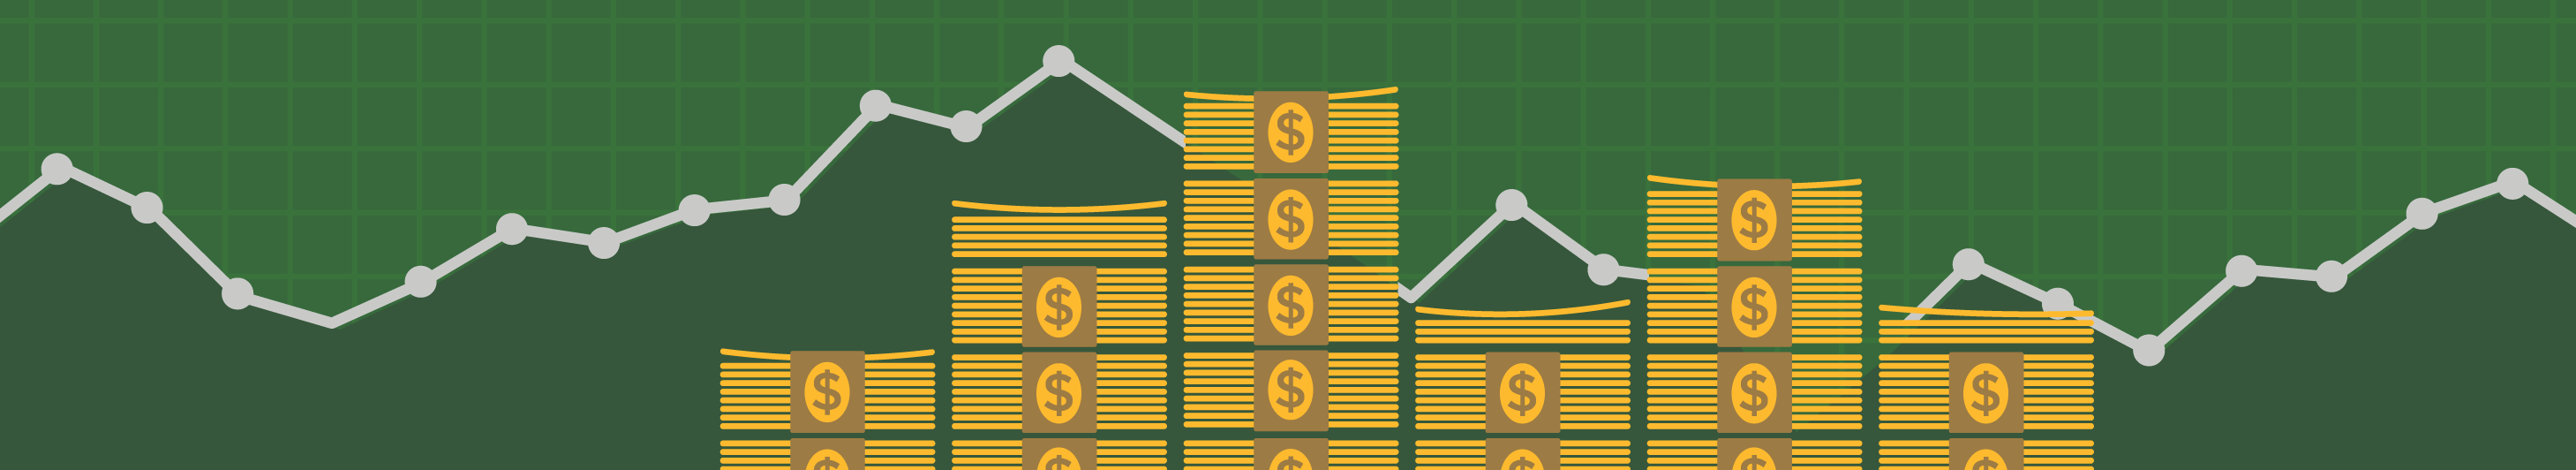 illustration of stacks of cash on green background